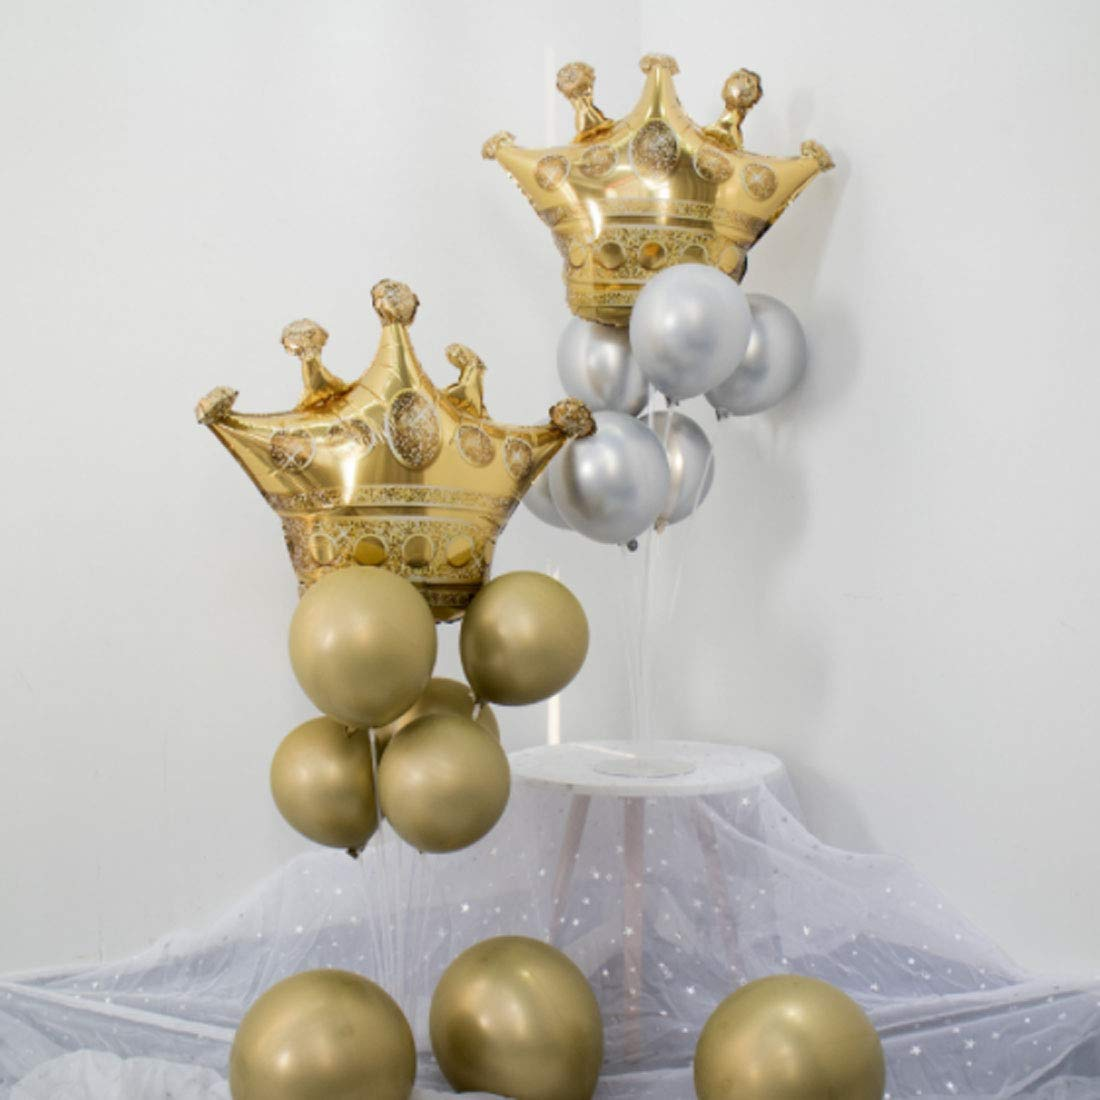 Foil Helium Balloons Fit for Birthday Wedding Party Decoration 31.1 x 25.6 inch 4 Pack Crown Balloons Inflatable